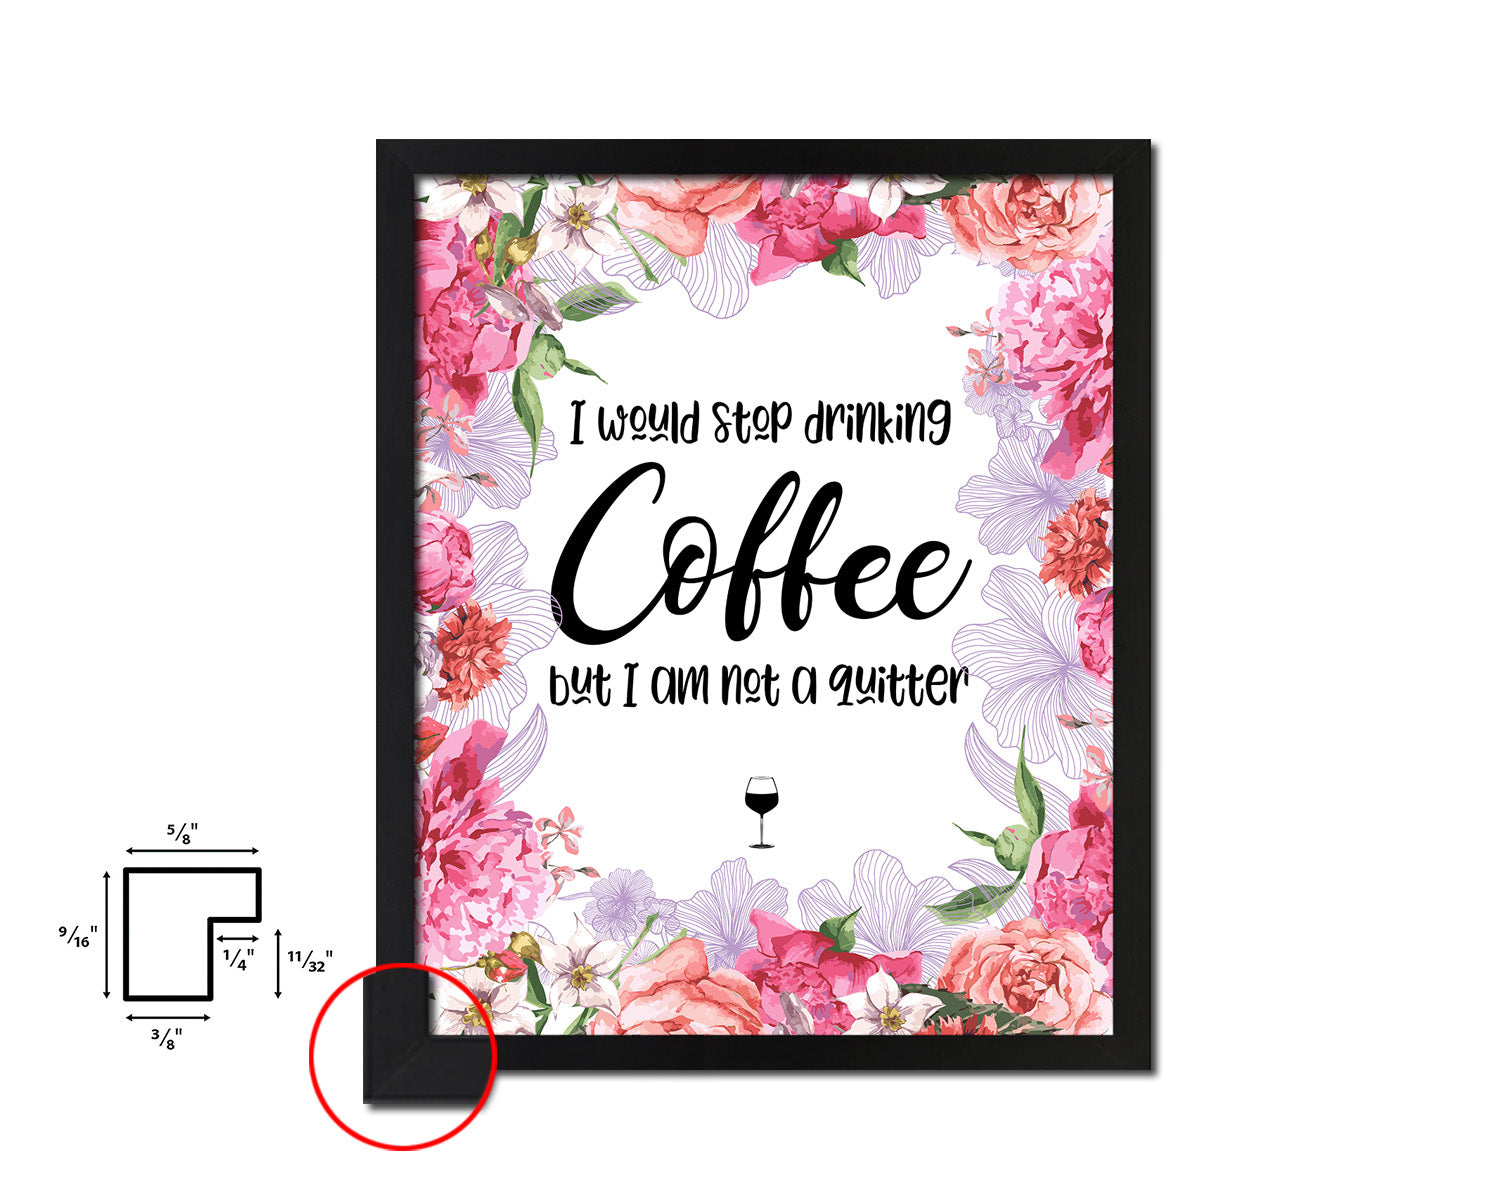 I would stop drinking coffee but I am not a quitter Quote Framed Artwork Print Wall Decor Art Gifts